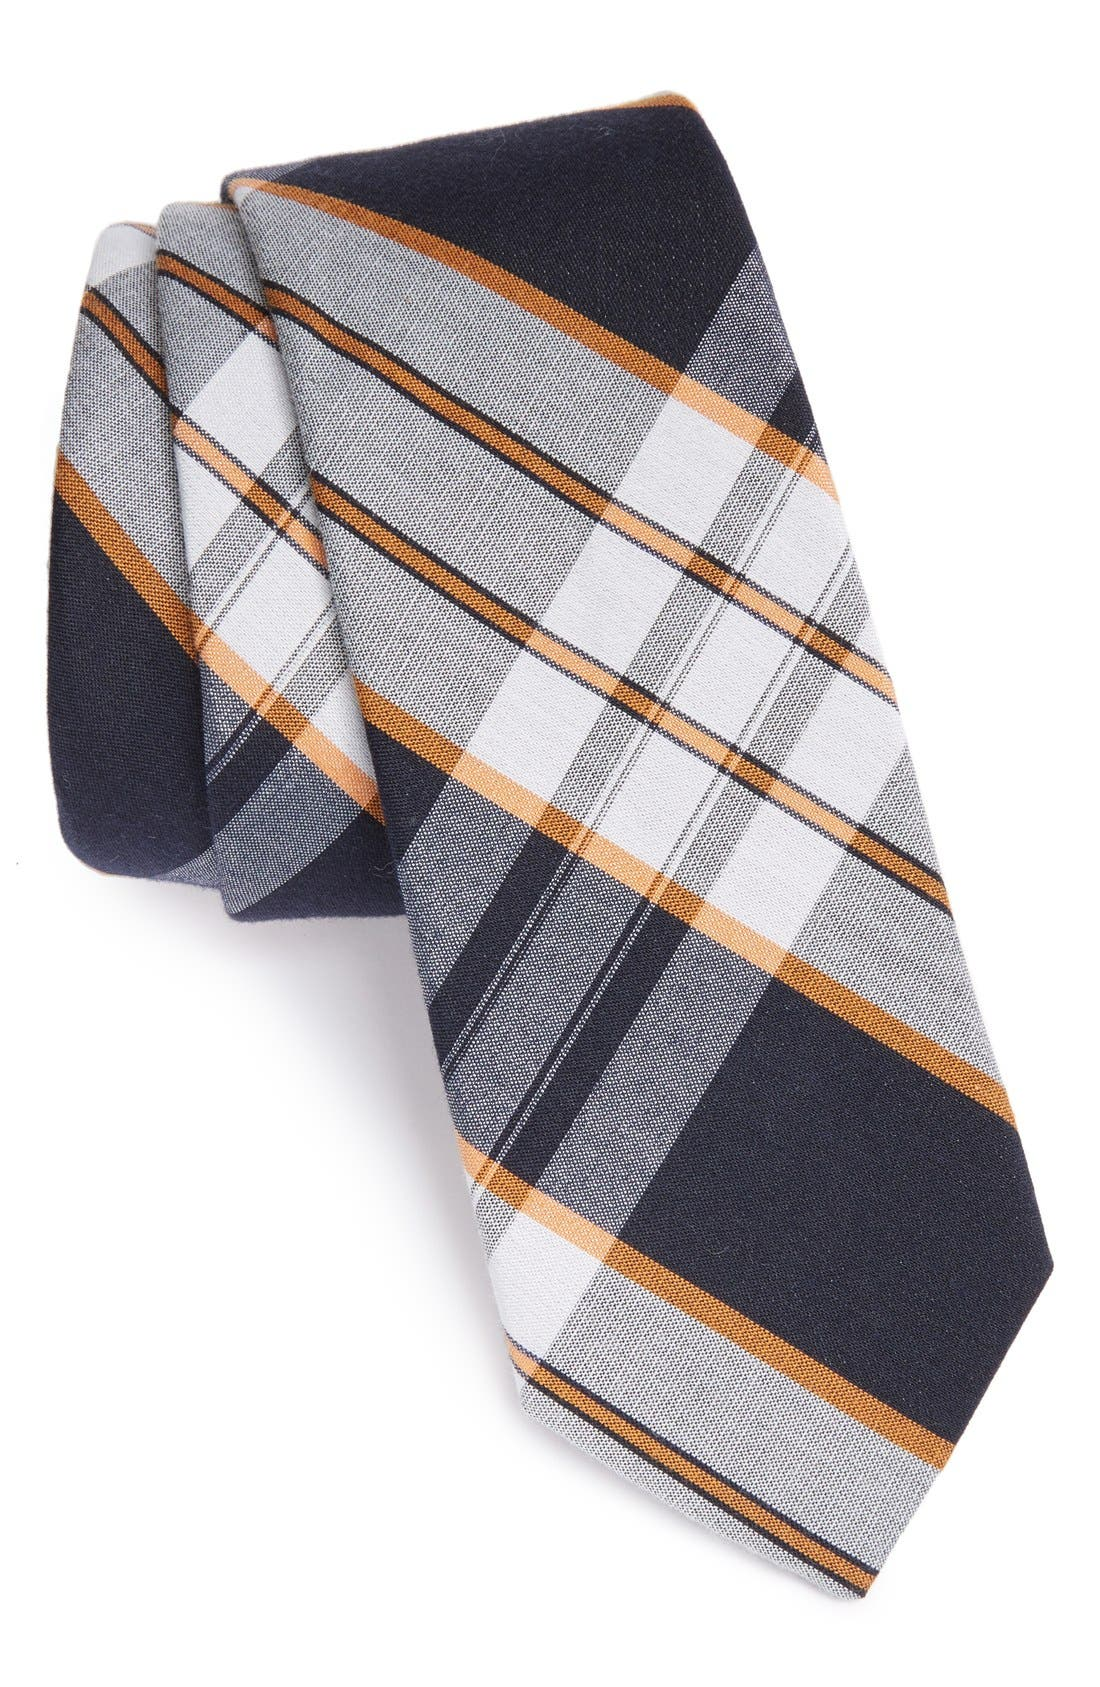 'Boldin' Woven Silk Tie,                             Main thumbnail 1, color,                             Orange